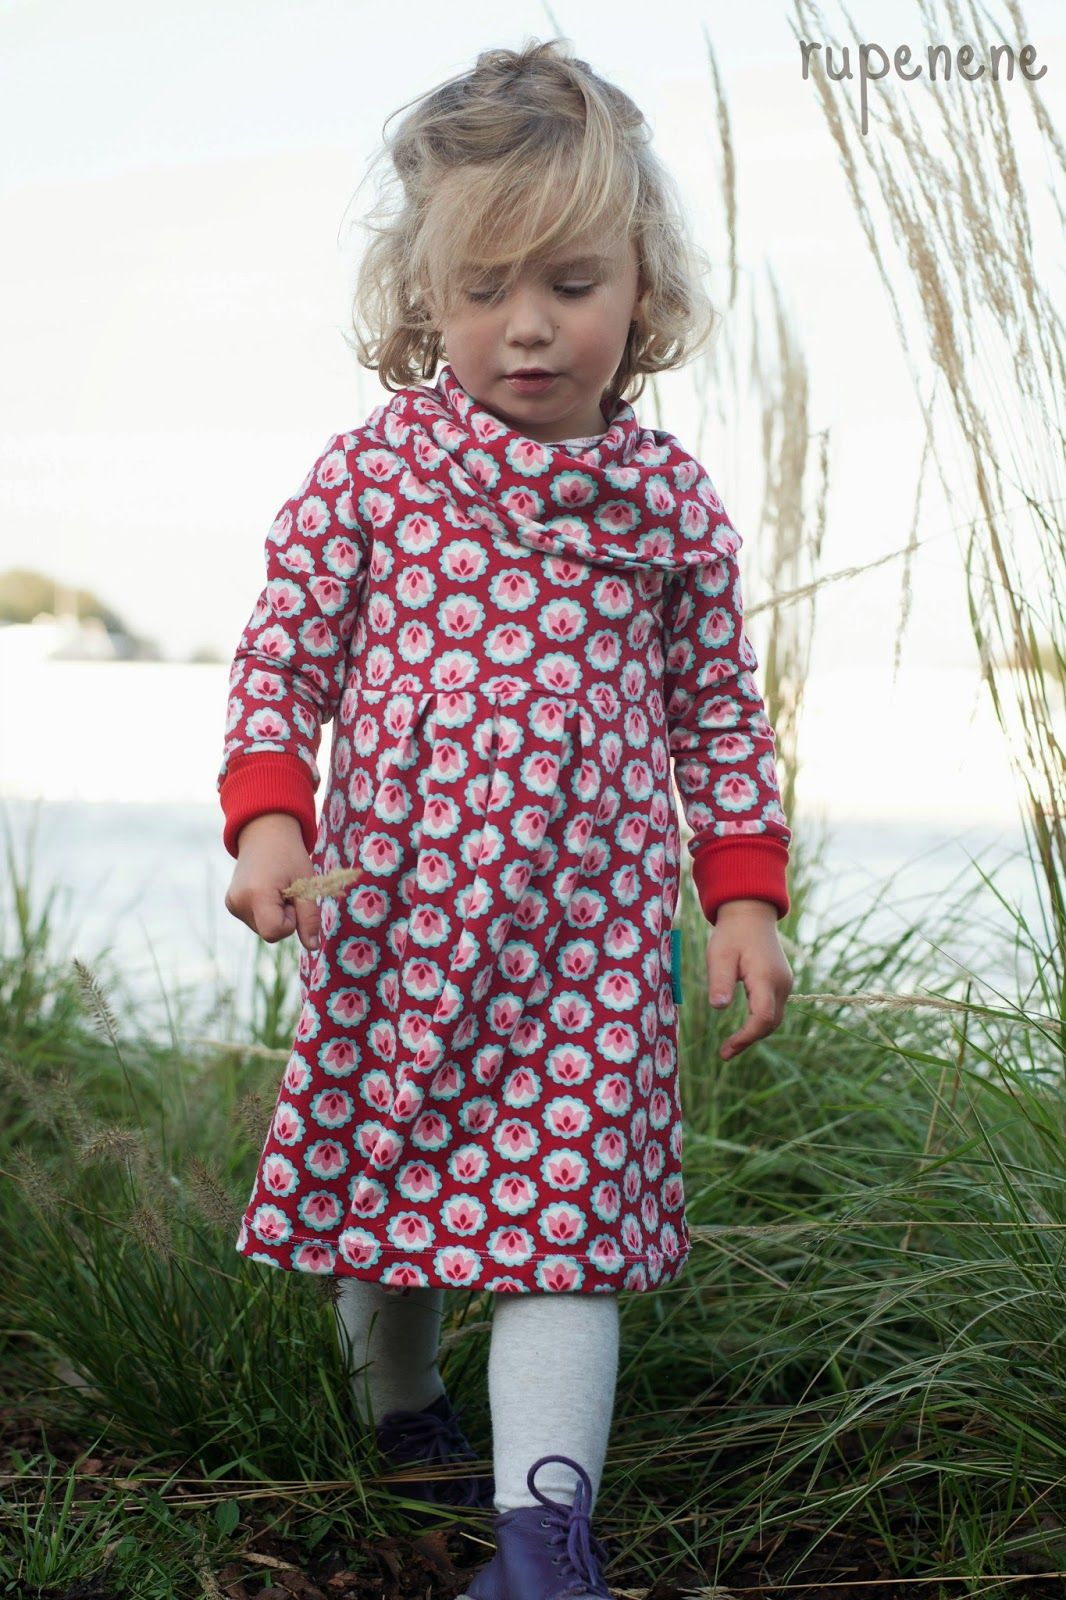 Kleid Schnittmuster Baby Lillesol And Pelle Schnittmuster Pattern Kleid Mit